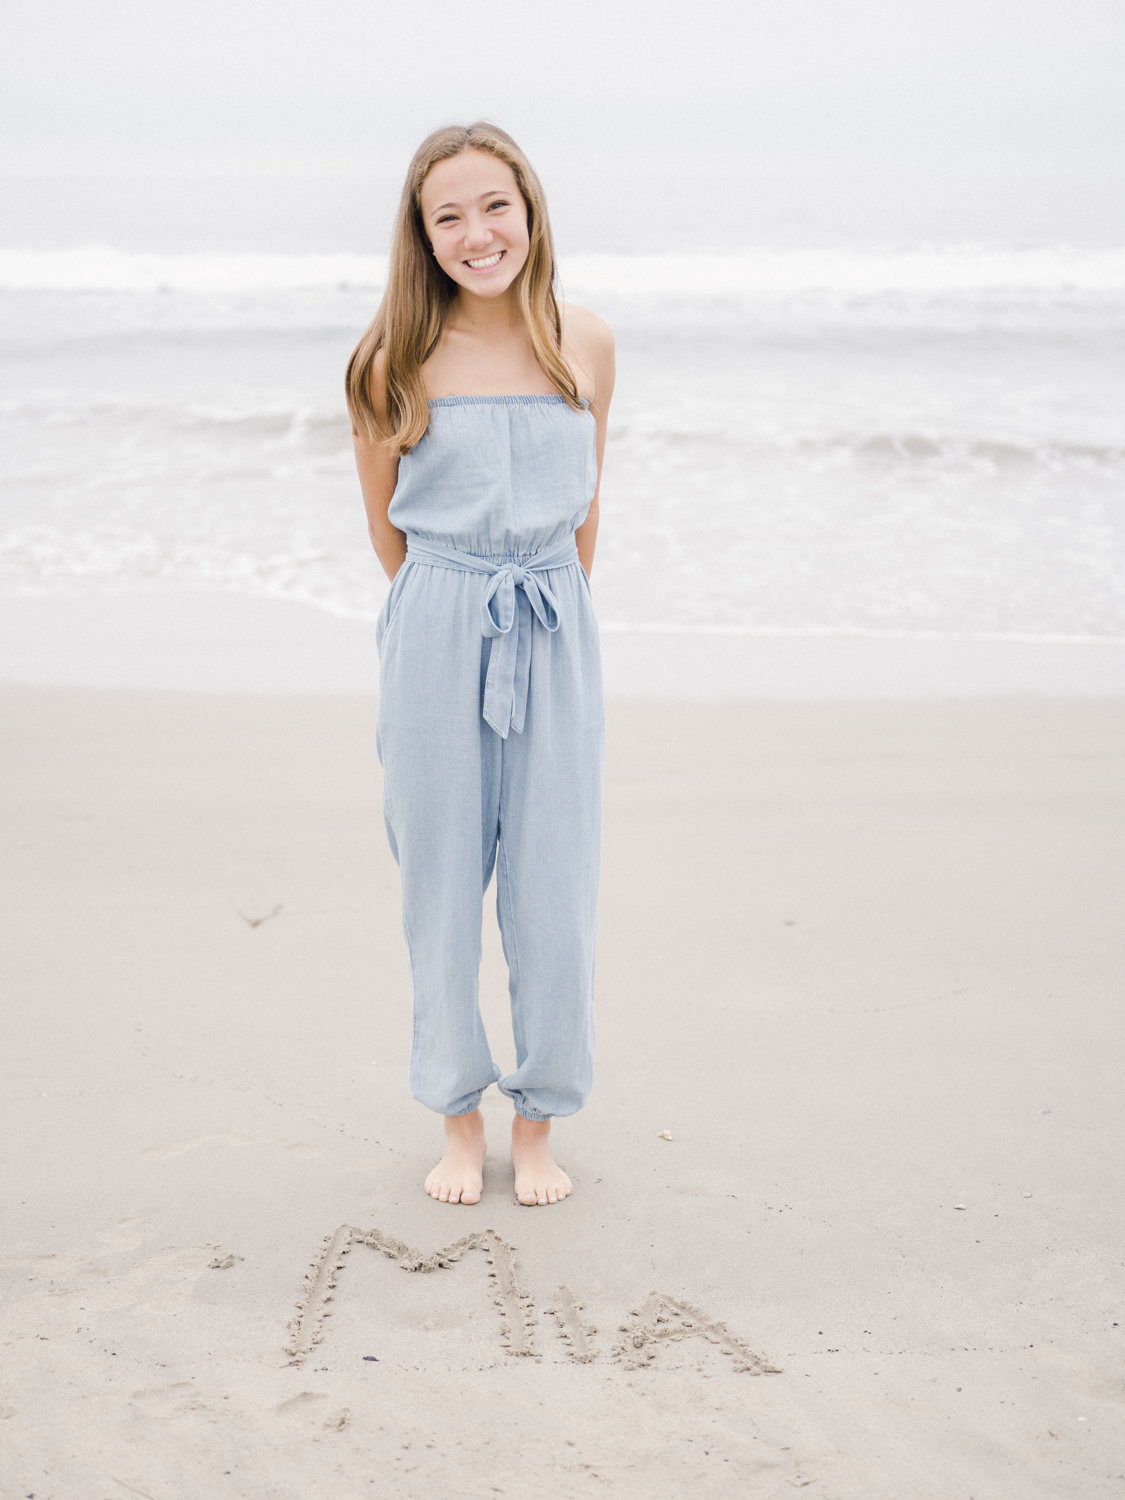 Girls standing on beach with her name written in the sand in front of her